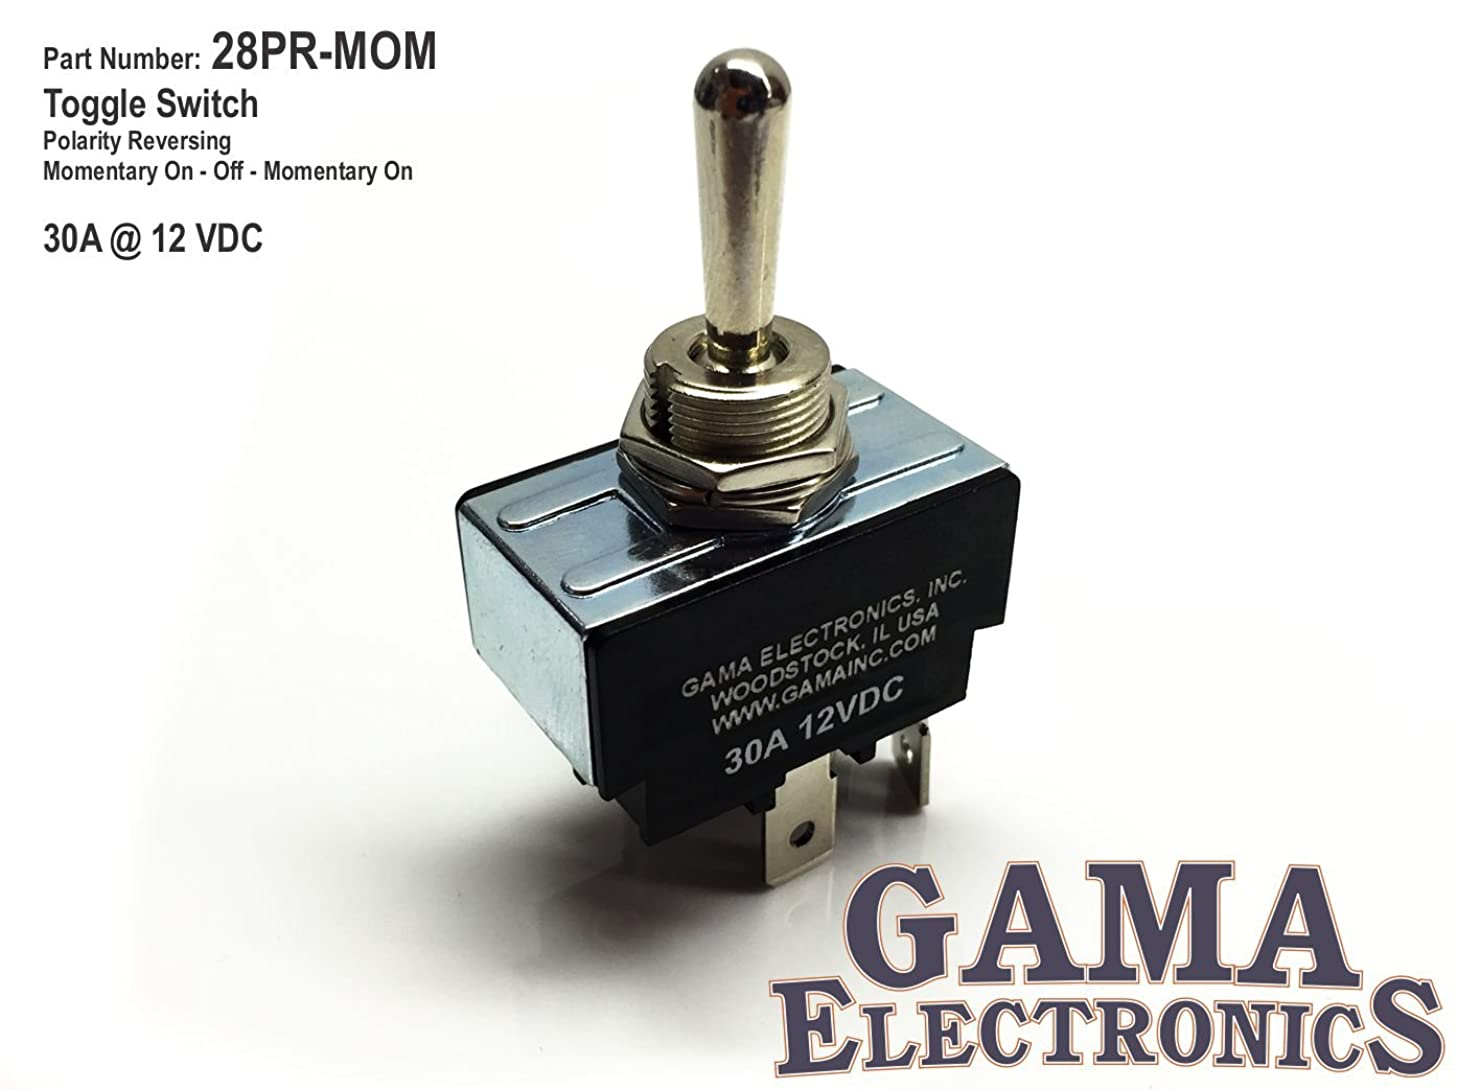 GAMA Electronics 30 Amp Toggle Switch 3 Position Polarity Reversing DC Motor Control- Momentary